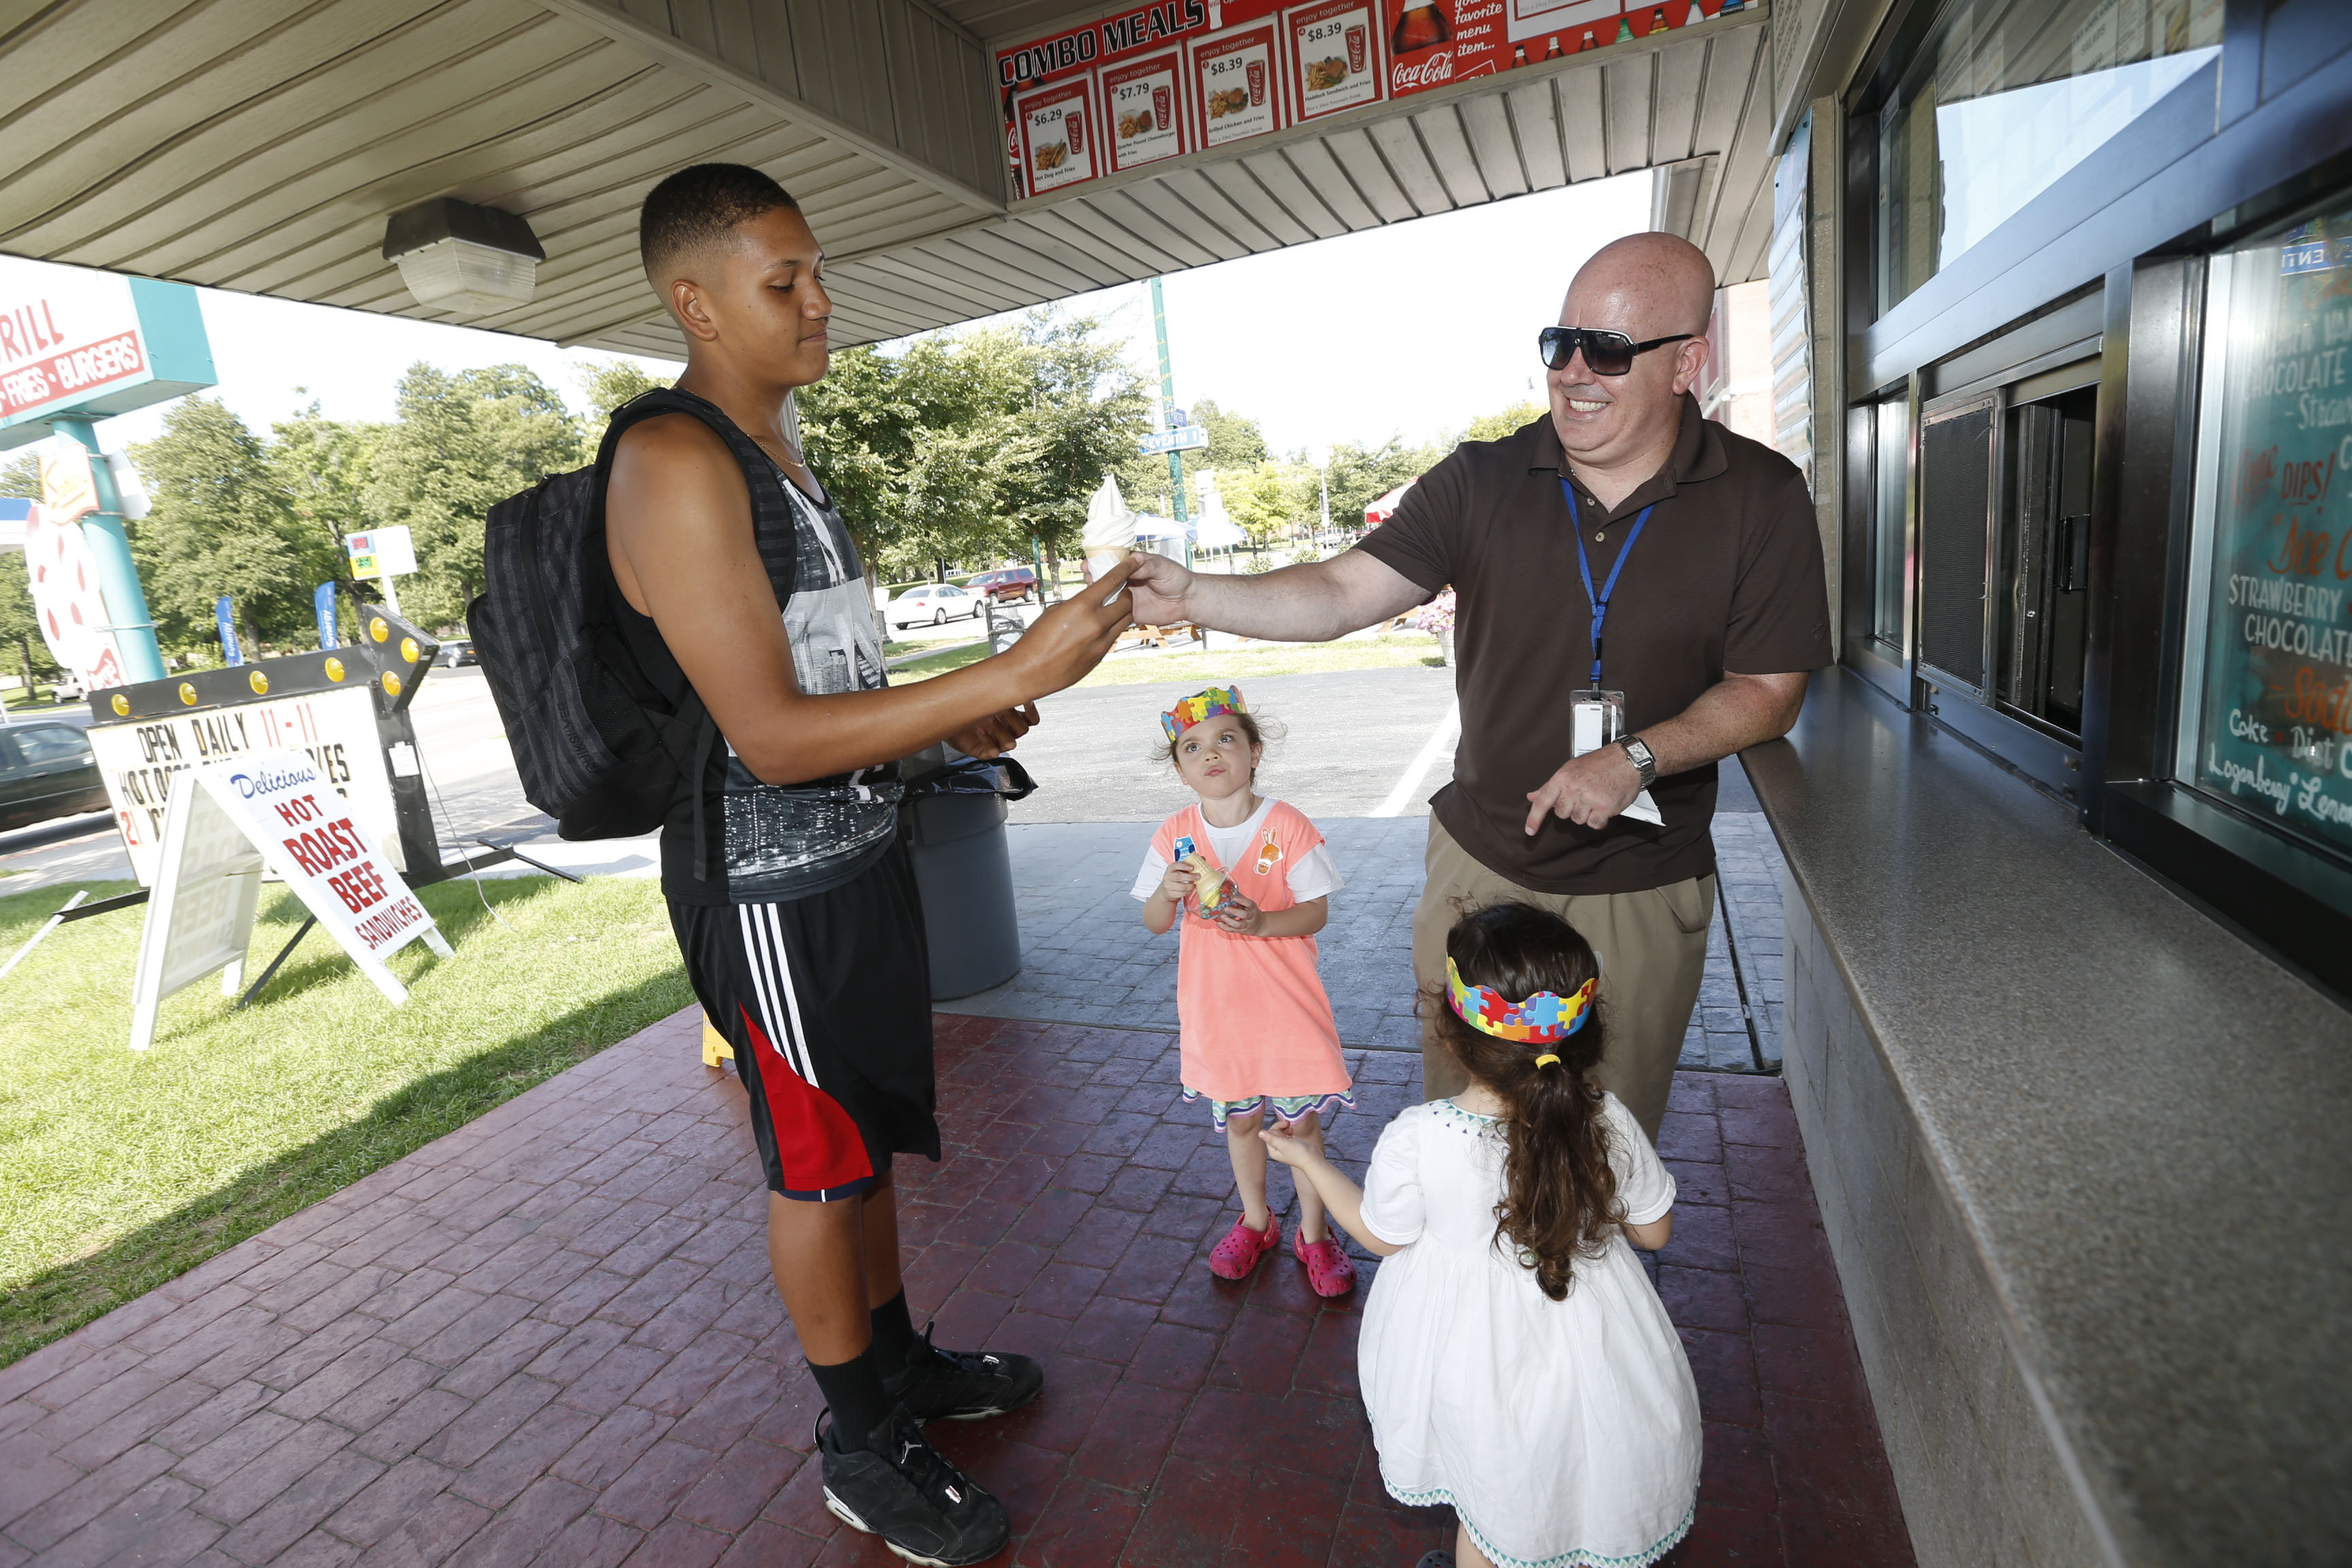 John Starkey, the new principal at Lafayette High School, with his daughters Mia Luz, 3, front, and Marisol, 5, at his side, orders ice cream for John Torres, 17, recently from Puerto Rico, he ran into at a popular West Side ice cream shop at the corner of Porter Avenue and Seventh Street. (Robert Kirkham/Buffalo News)